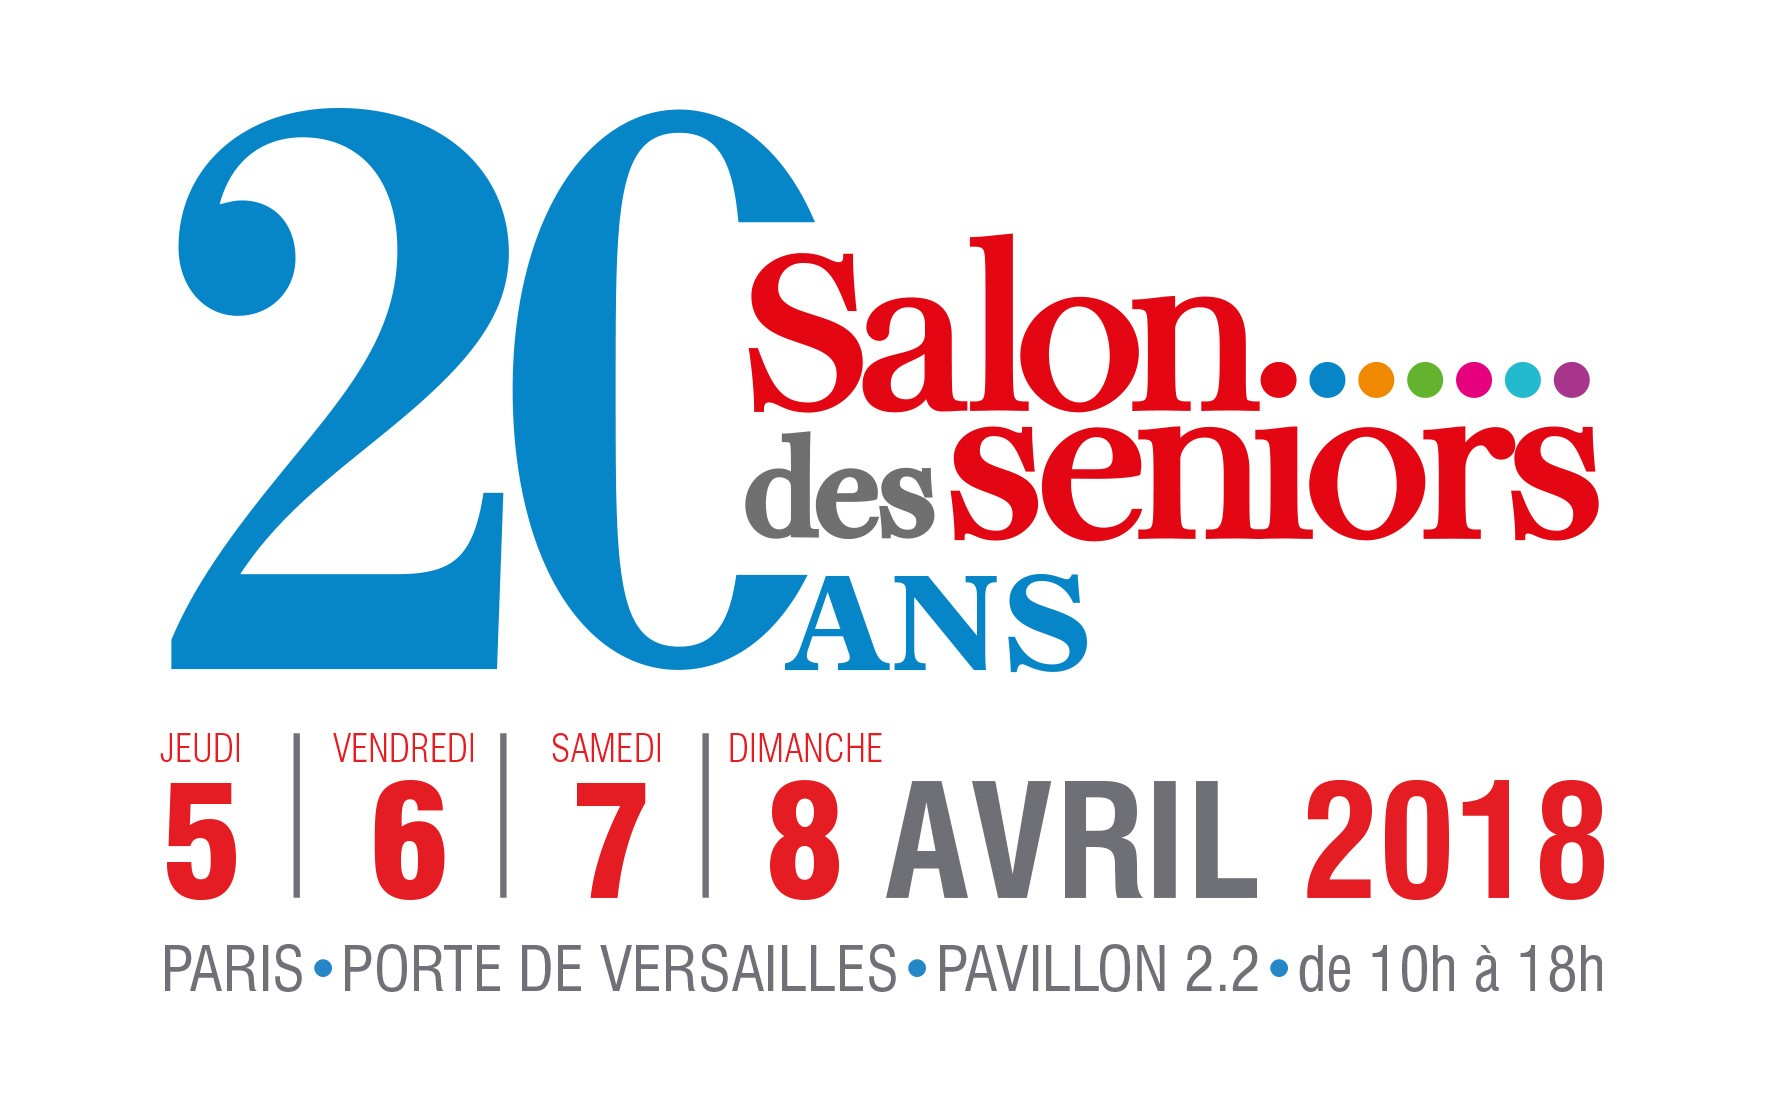 Visuel Salon des Seniors le 5 avril 2018